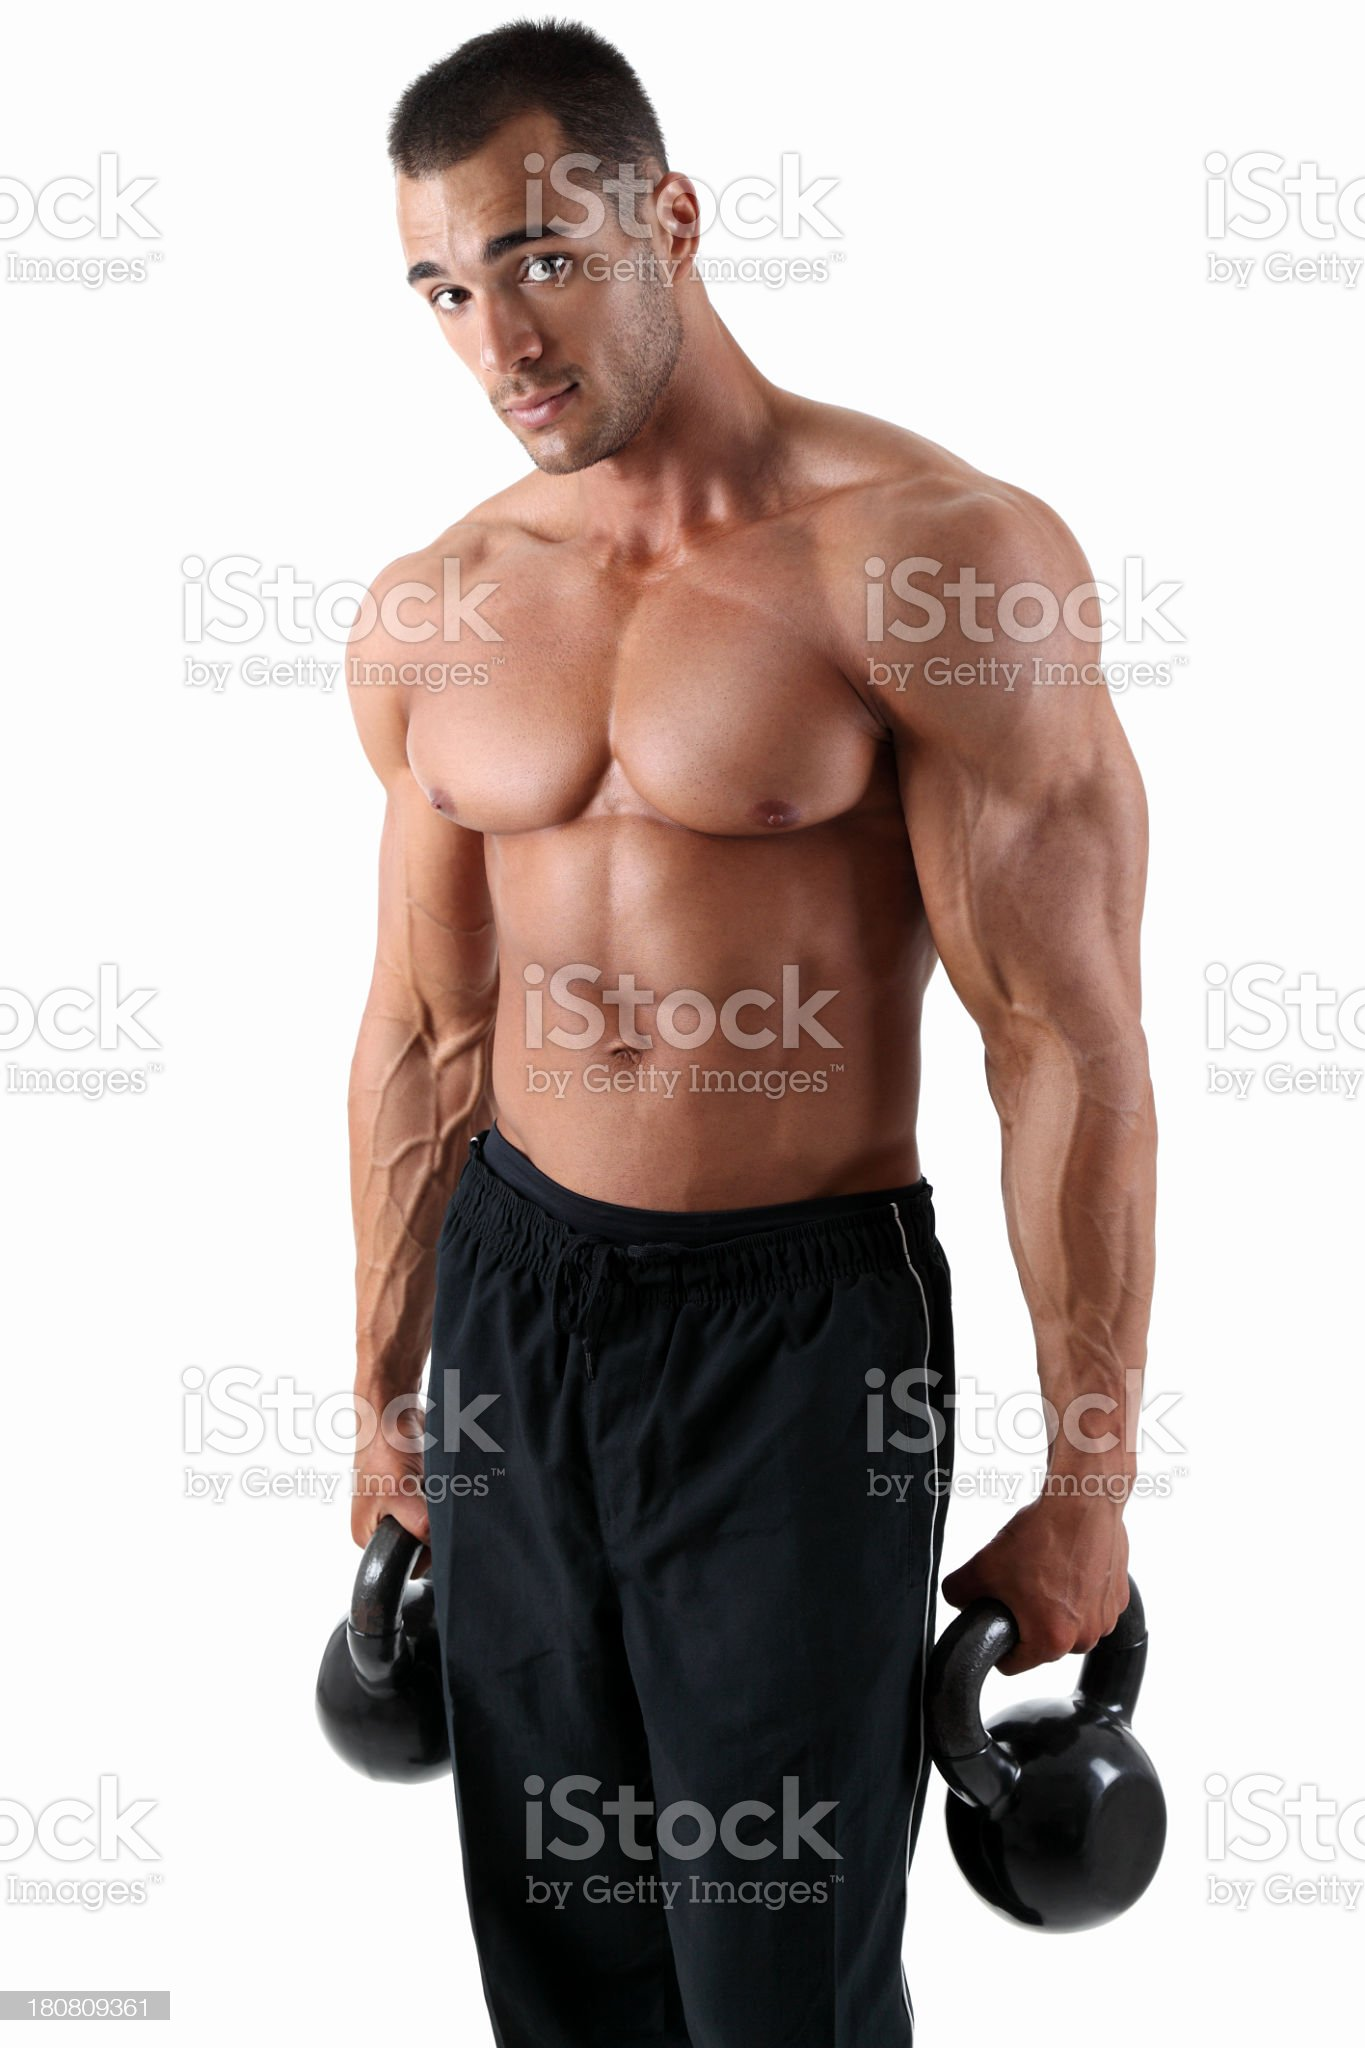 Crossfit guy royalty-free stock photo